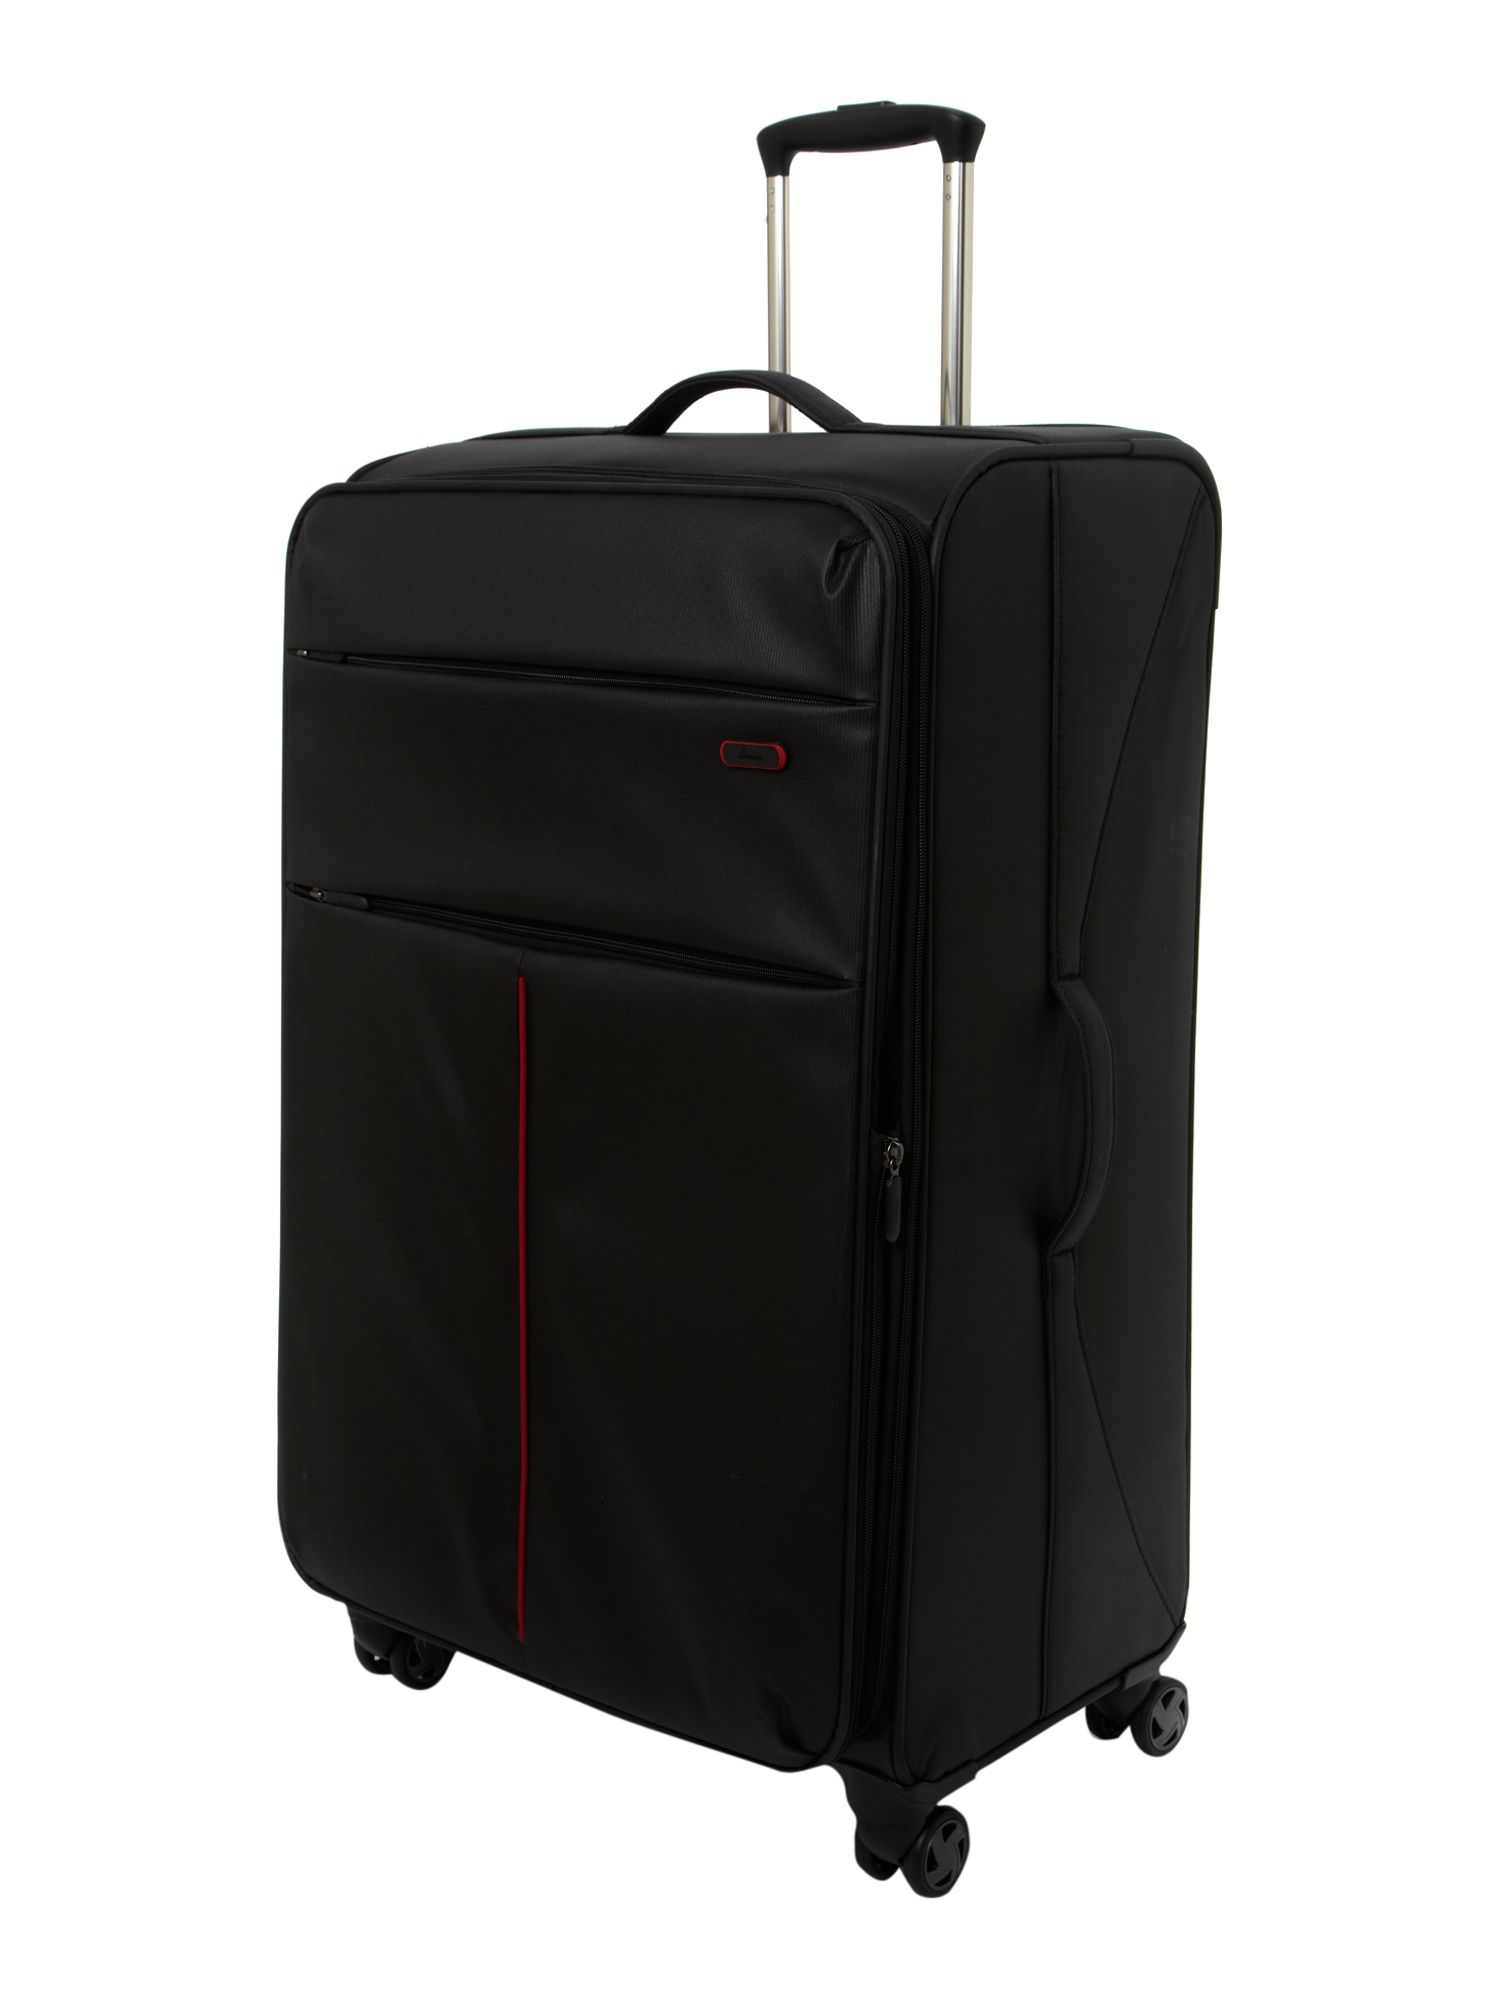 SpaceLite large 4 wheel suitcase